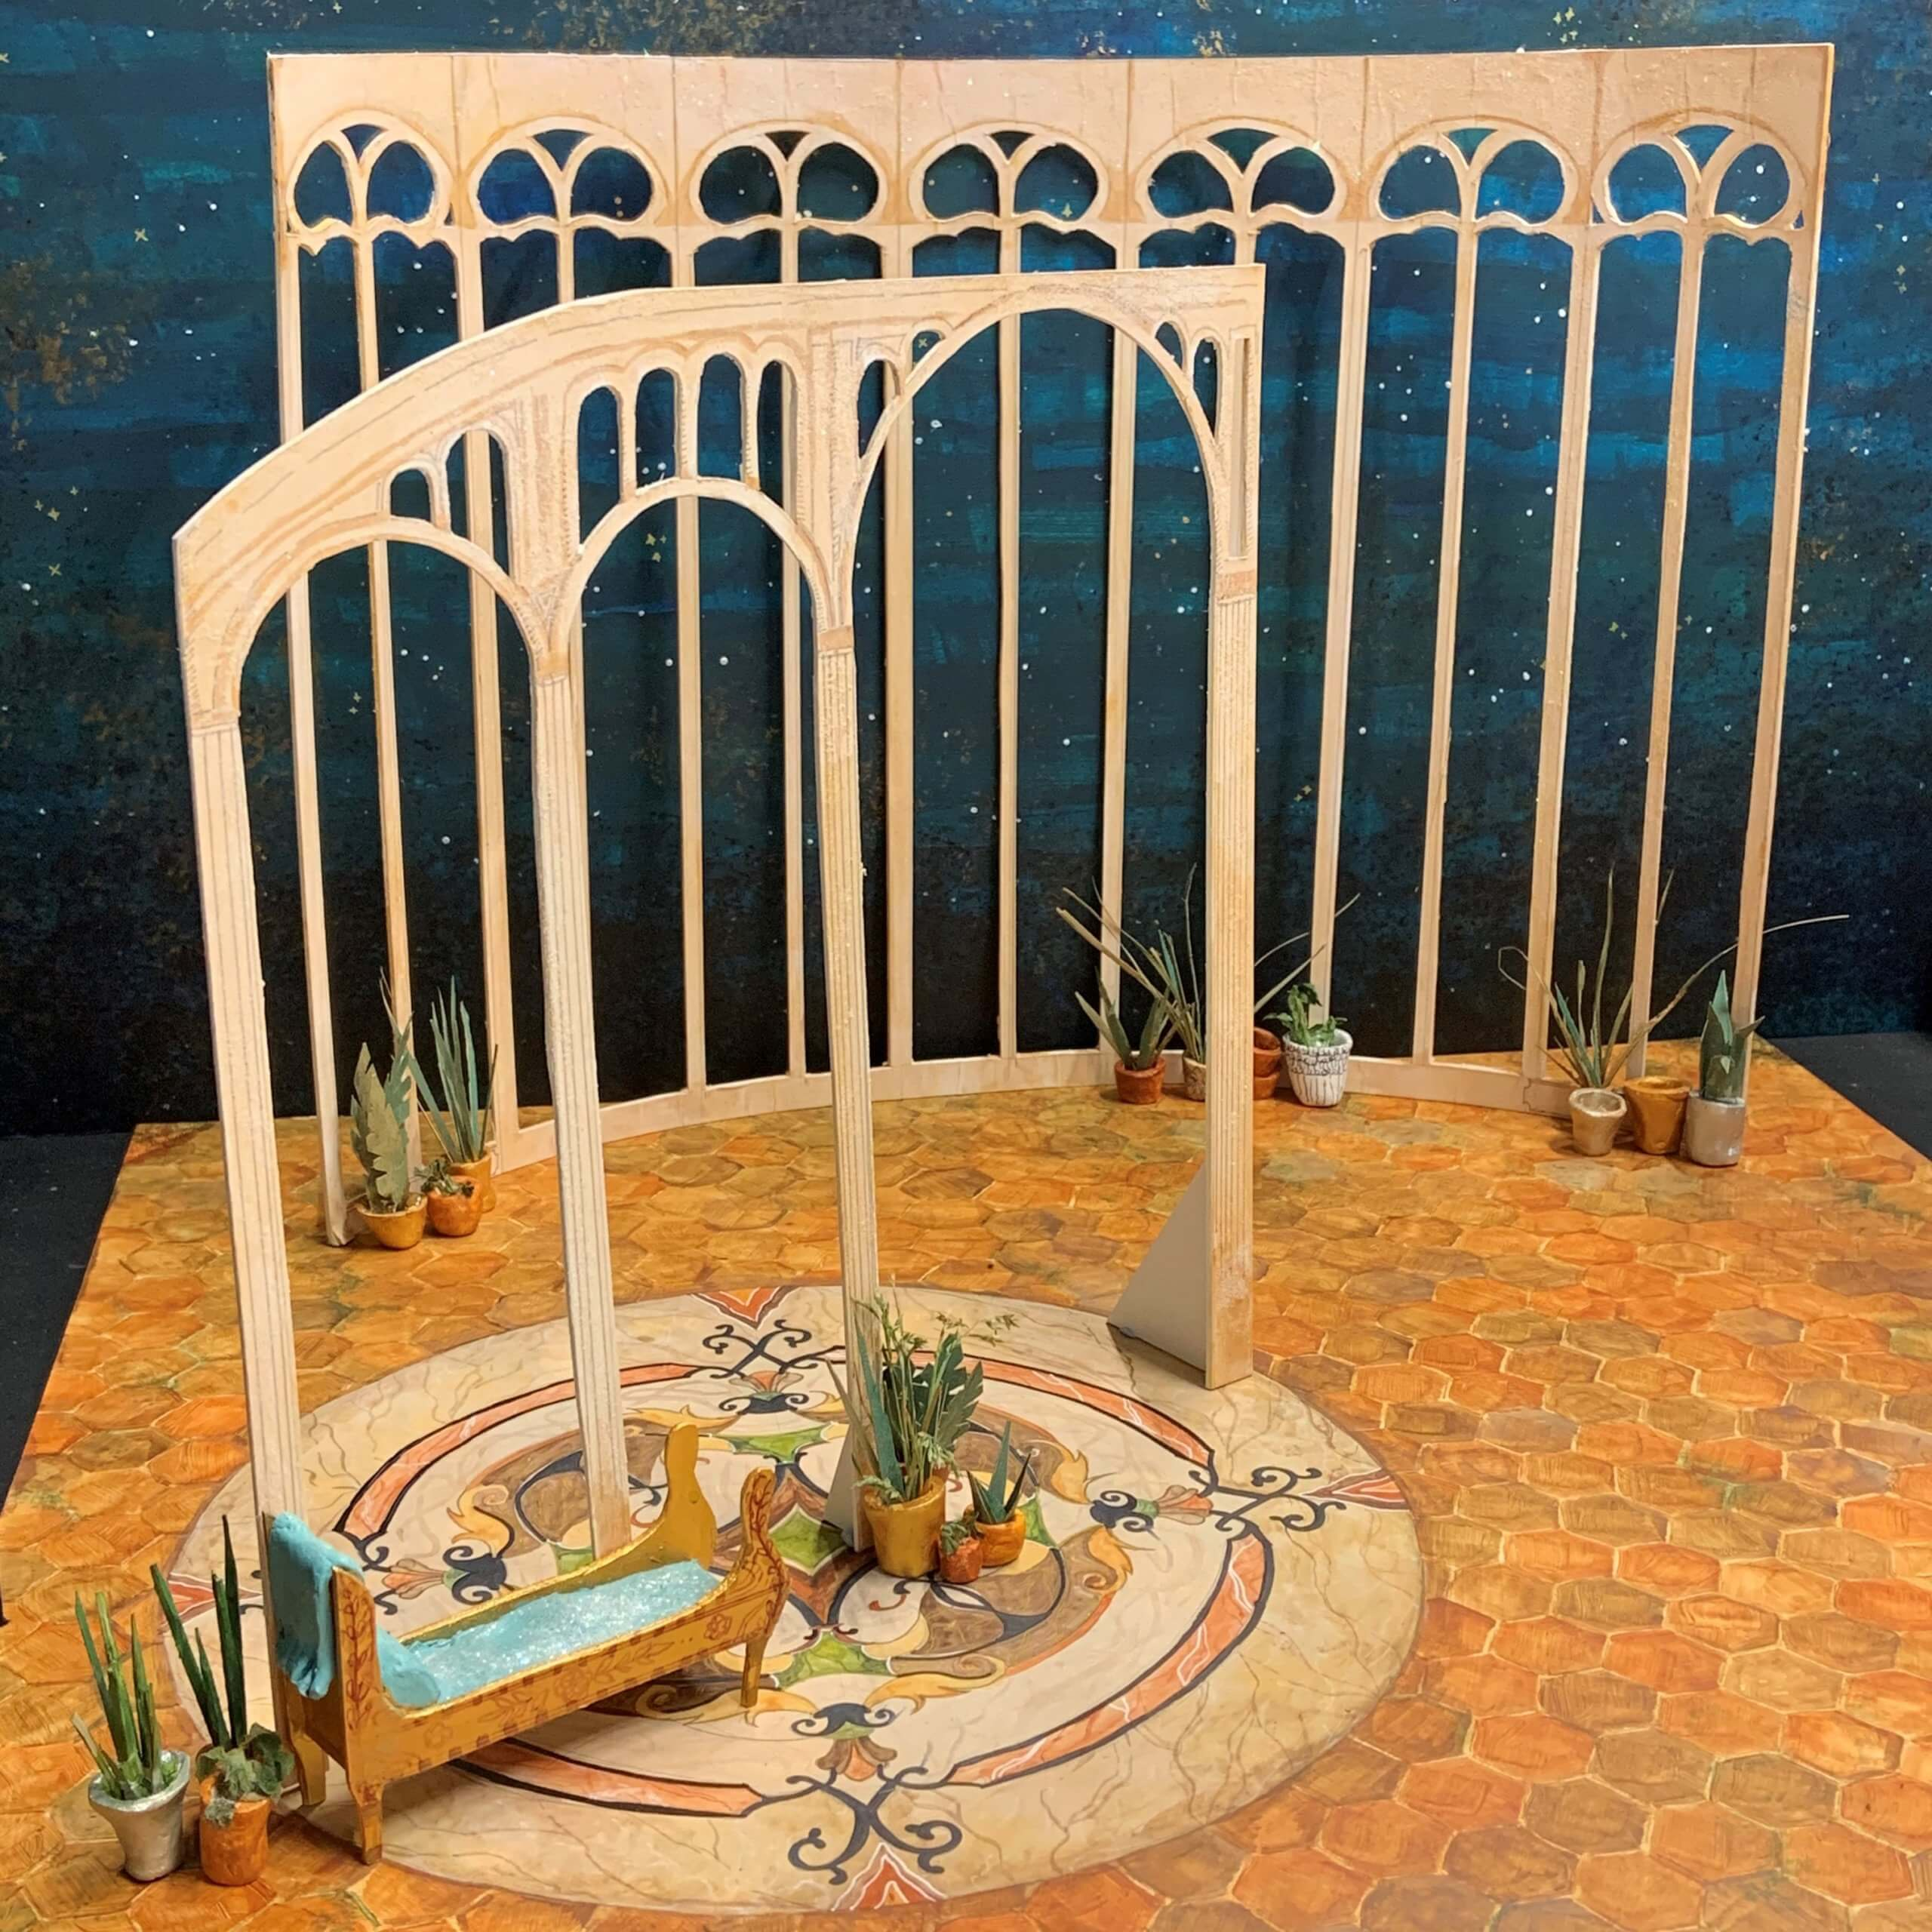 Set design for Cinderella created by Lu Herbert of the Production Arts and Design degree course